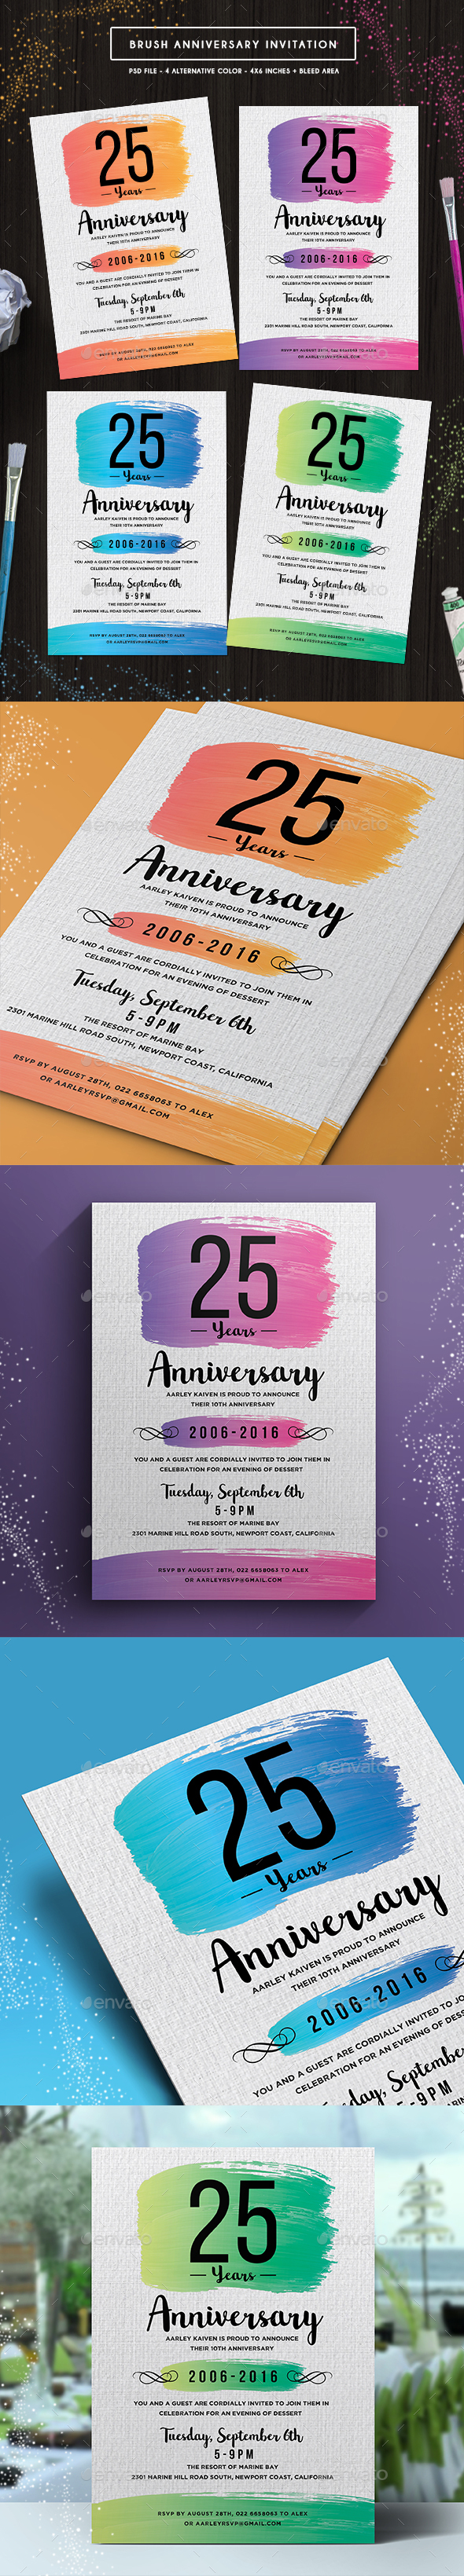 Brush Anniversary Invitation - Anniversary Greeting Cards